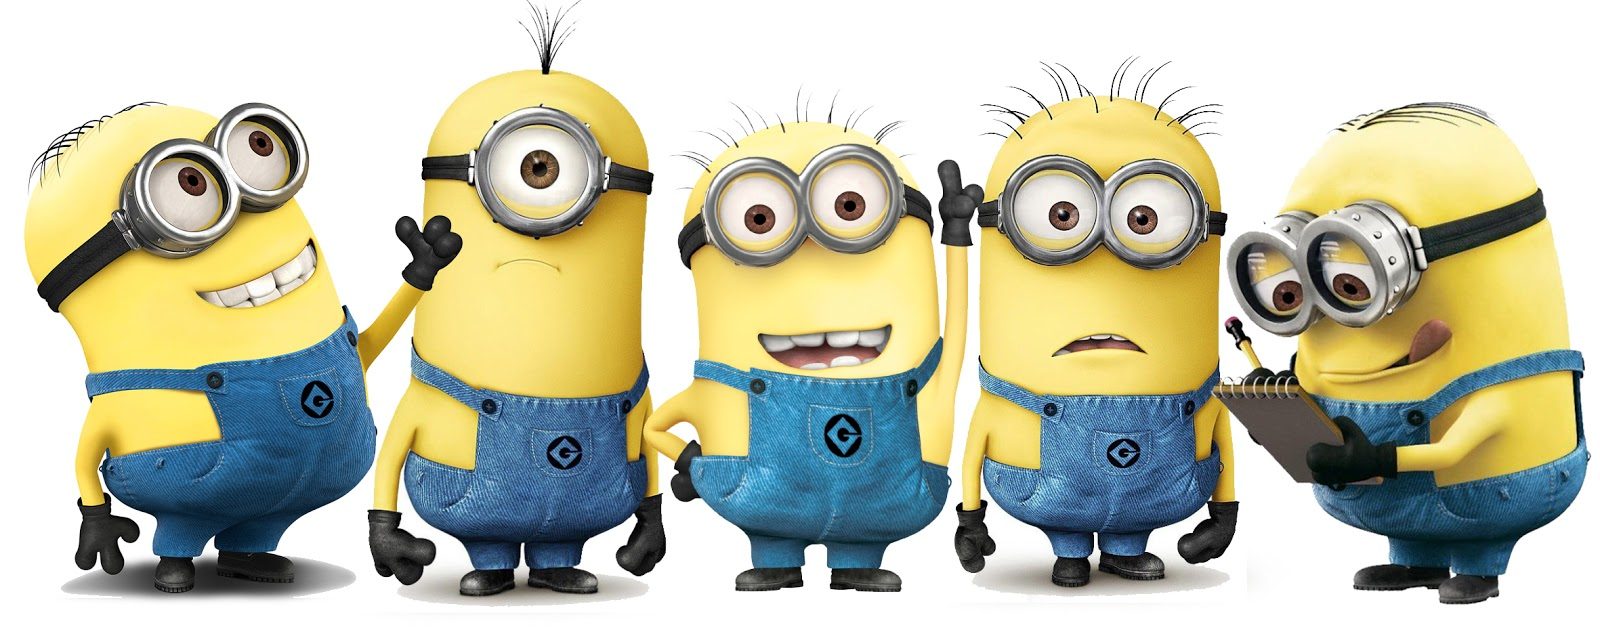 minions arrive on digital hd 11/24 & bd/dvd on 12/8 | forces of geek